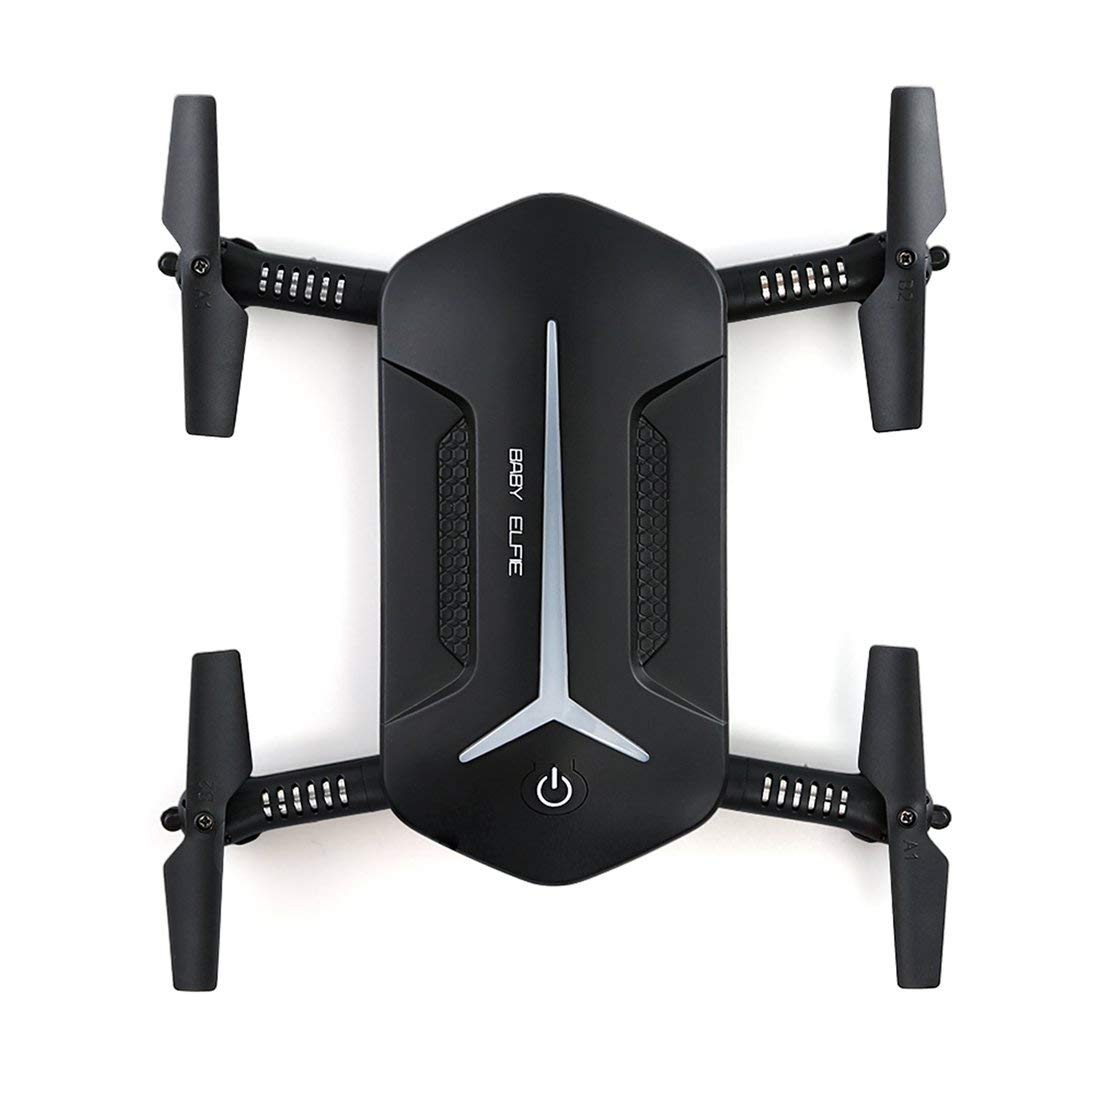 ToGames-ES JJR/C H37 Mini Drone 2.4G Wi-Fi FPV RC Quadcopter with 2 Battery Altitude Hold